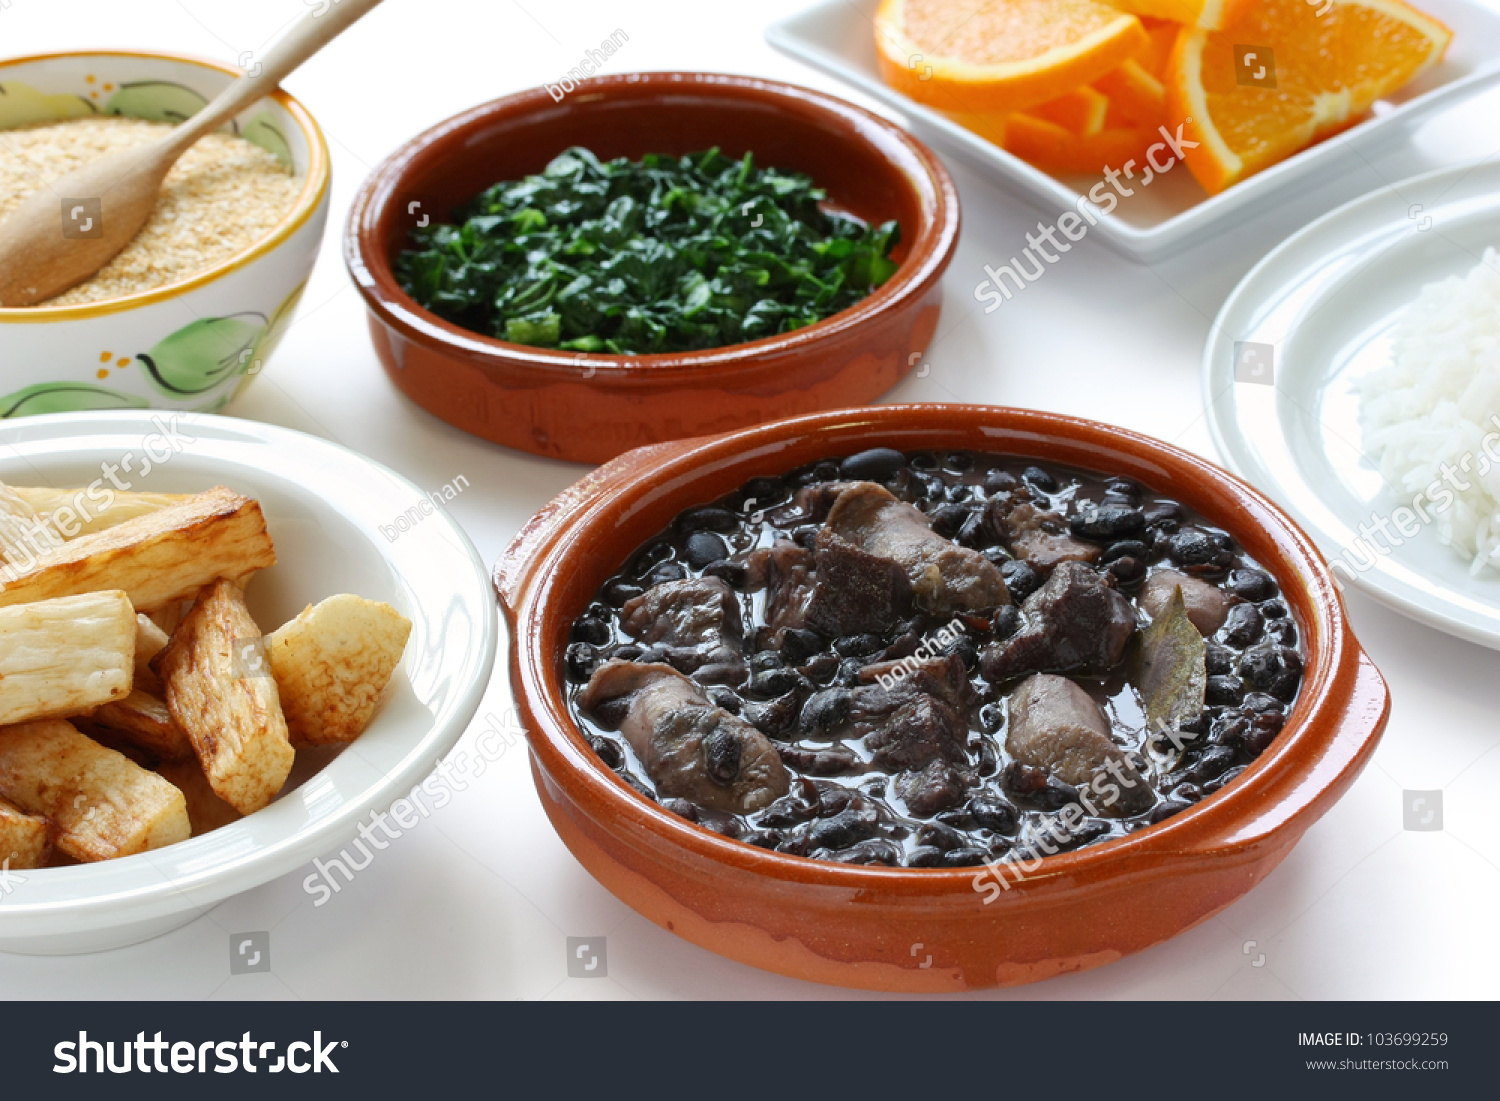 Feijoada, Black Beans And Meat Stew, Brazilian Cuisine Stock Photo ...